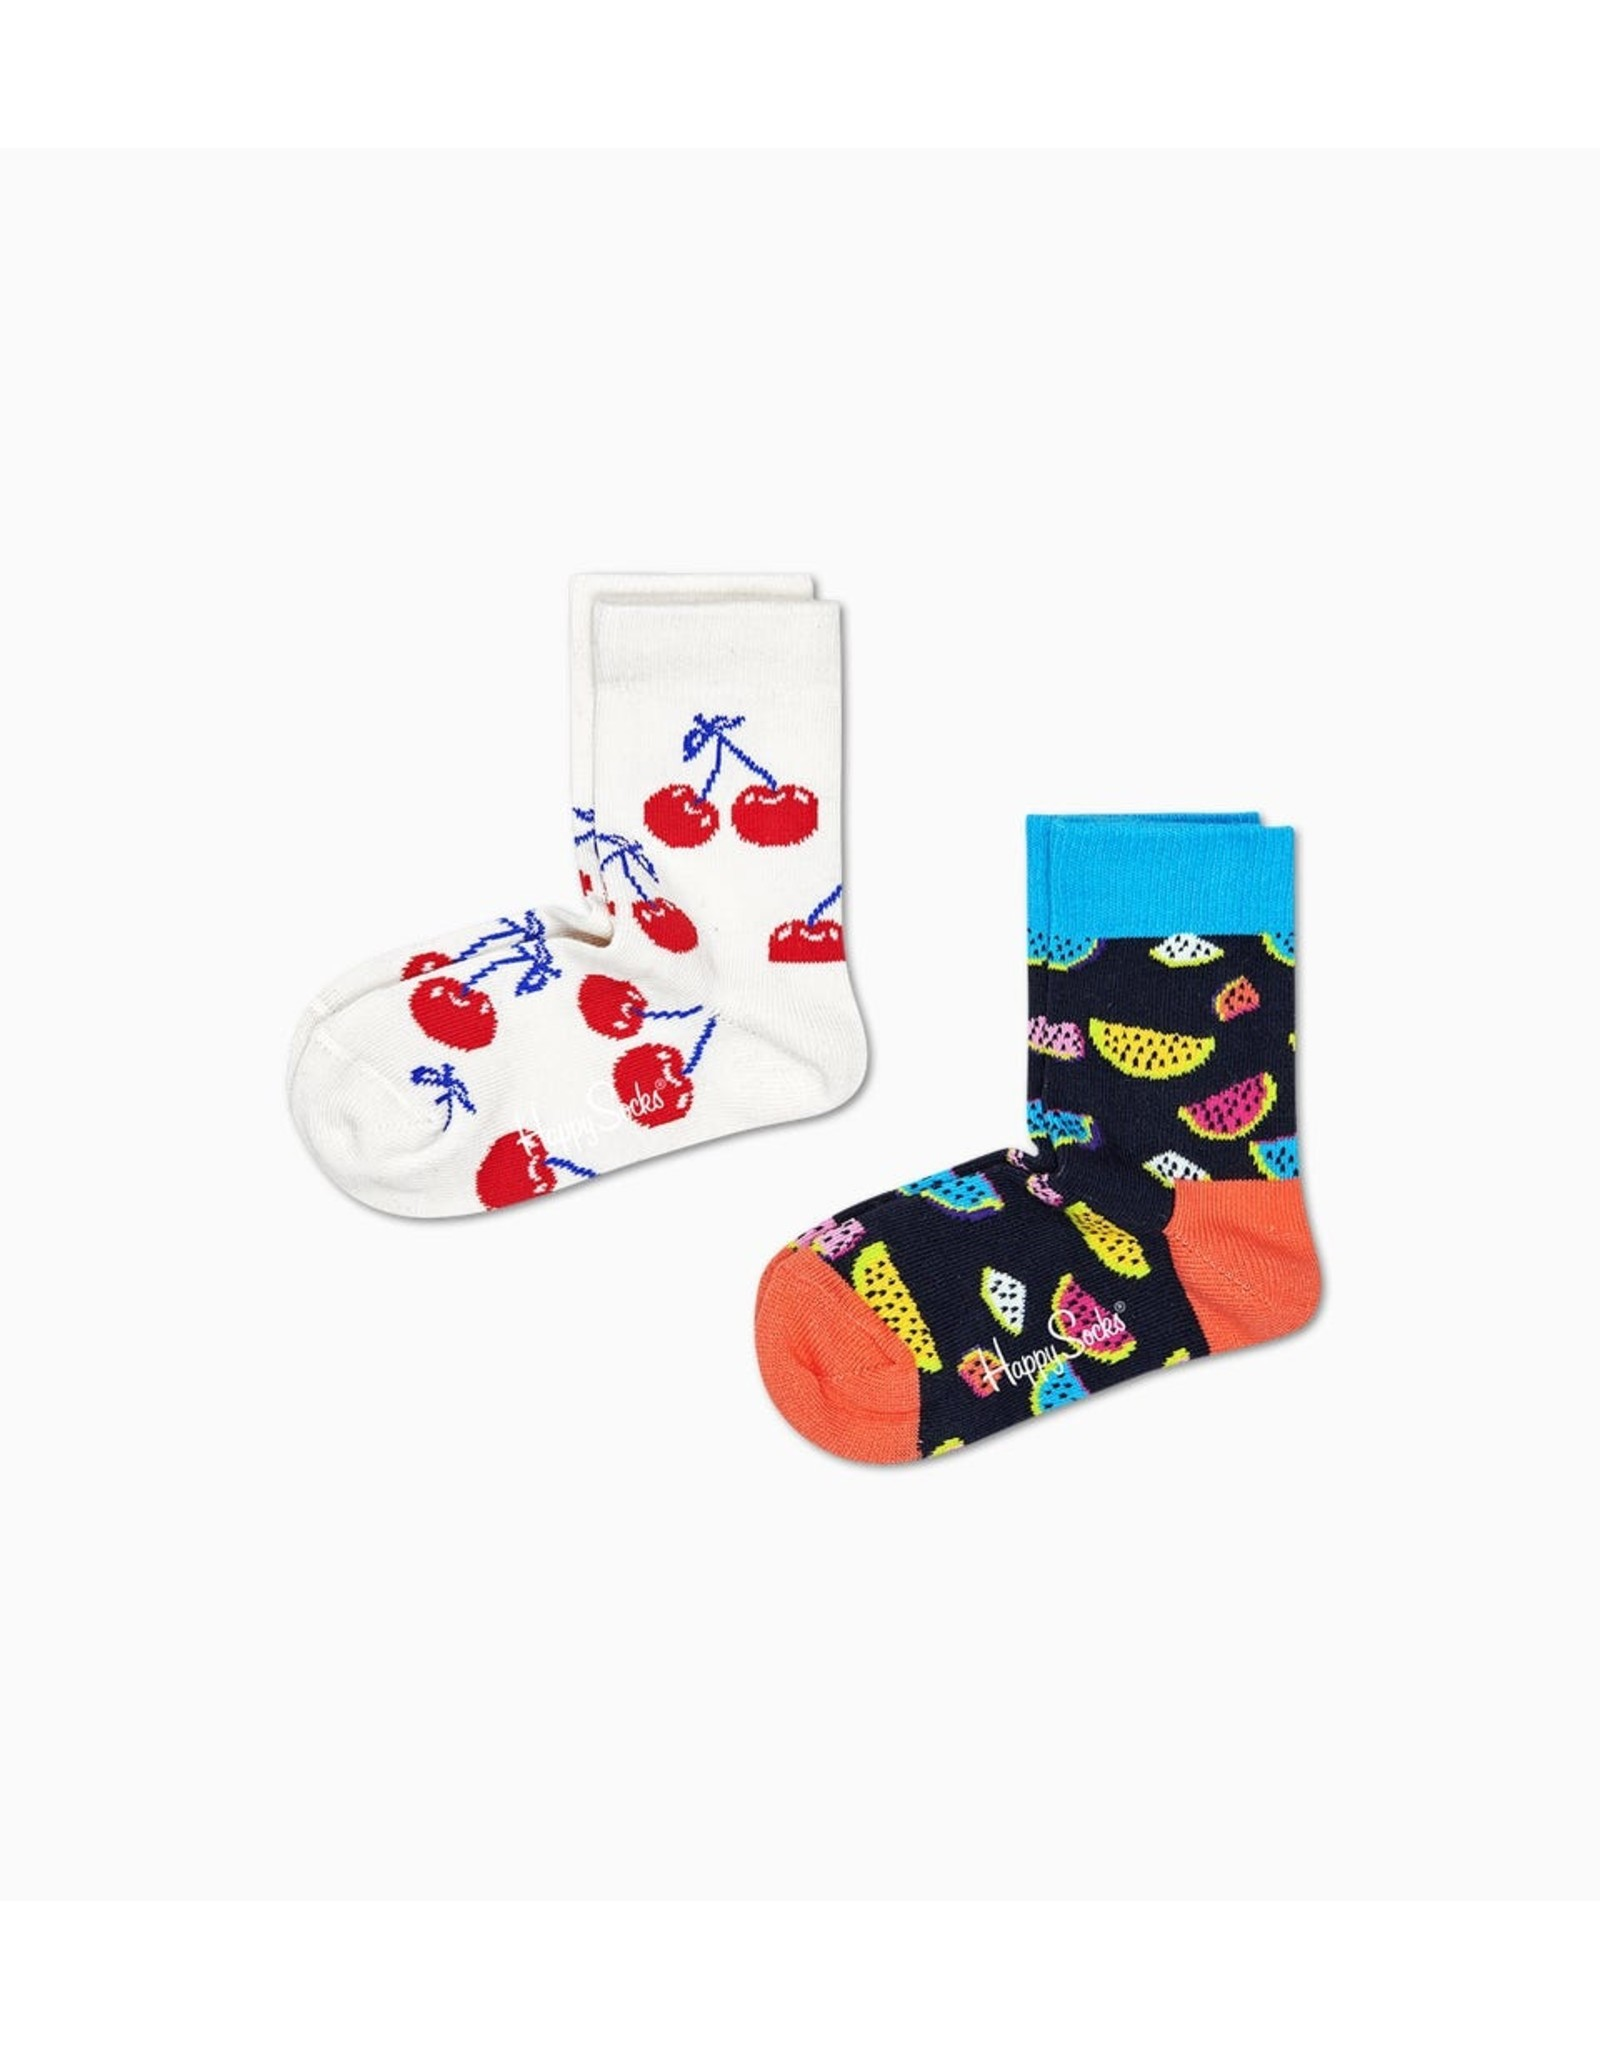 Happy Socks 2-pack kindersokken met fruitprint